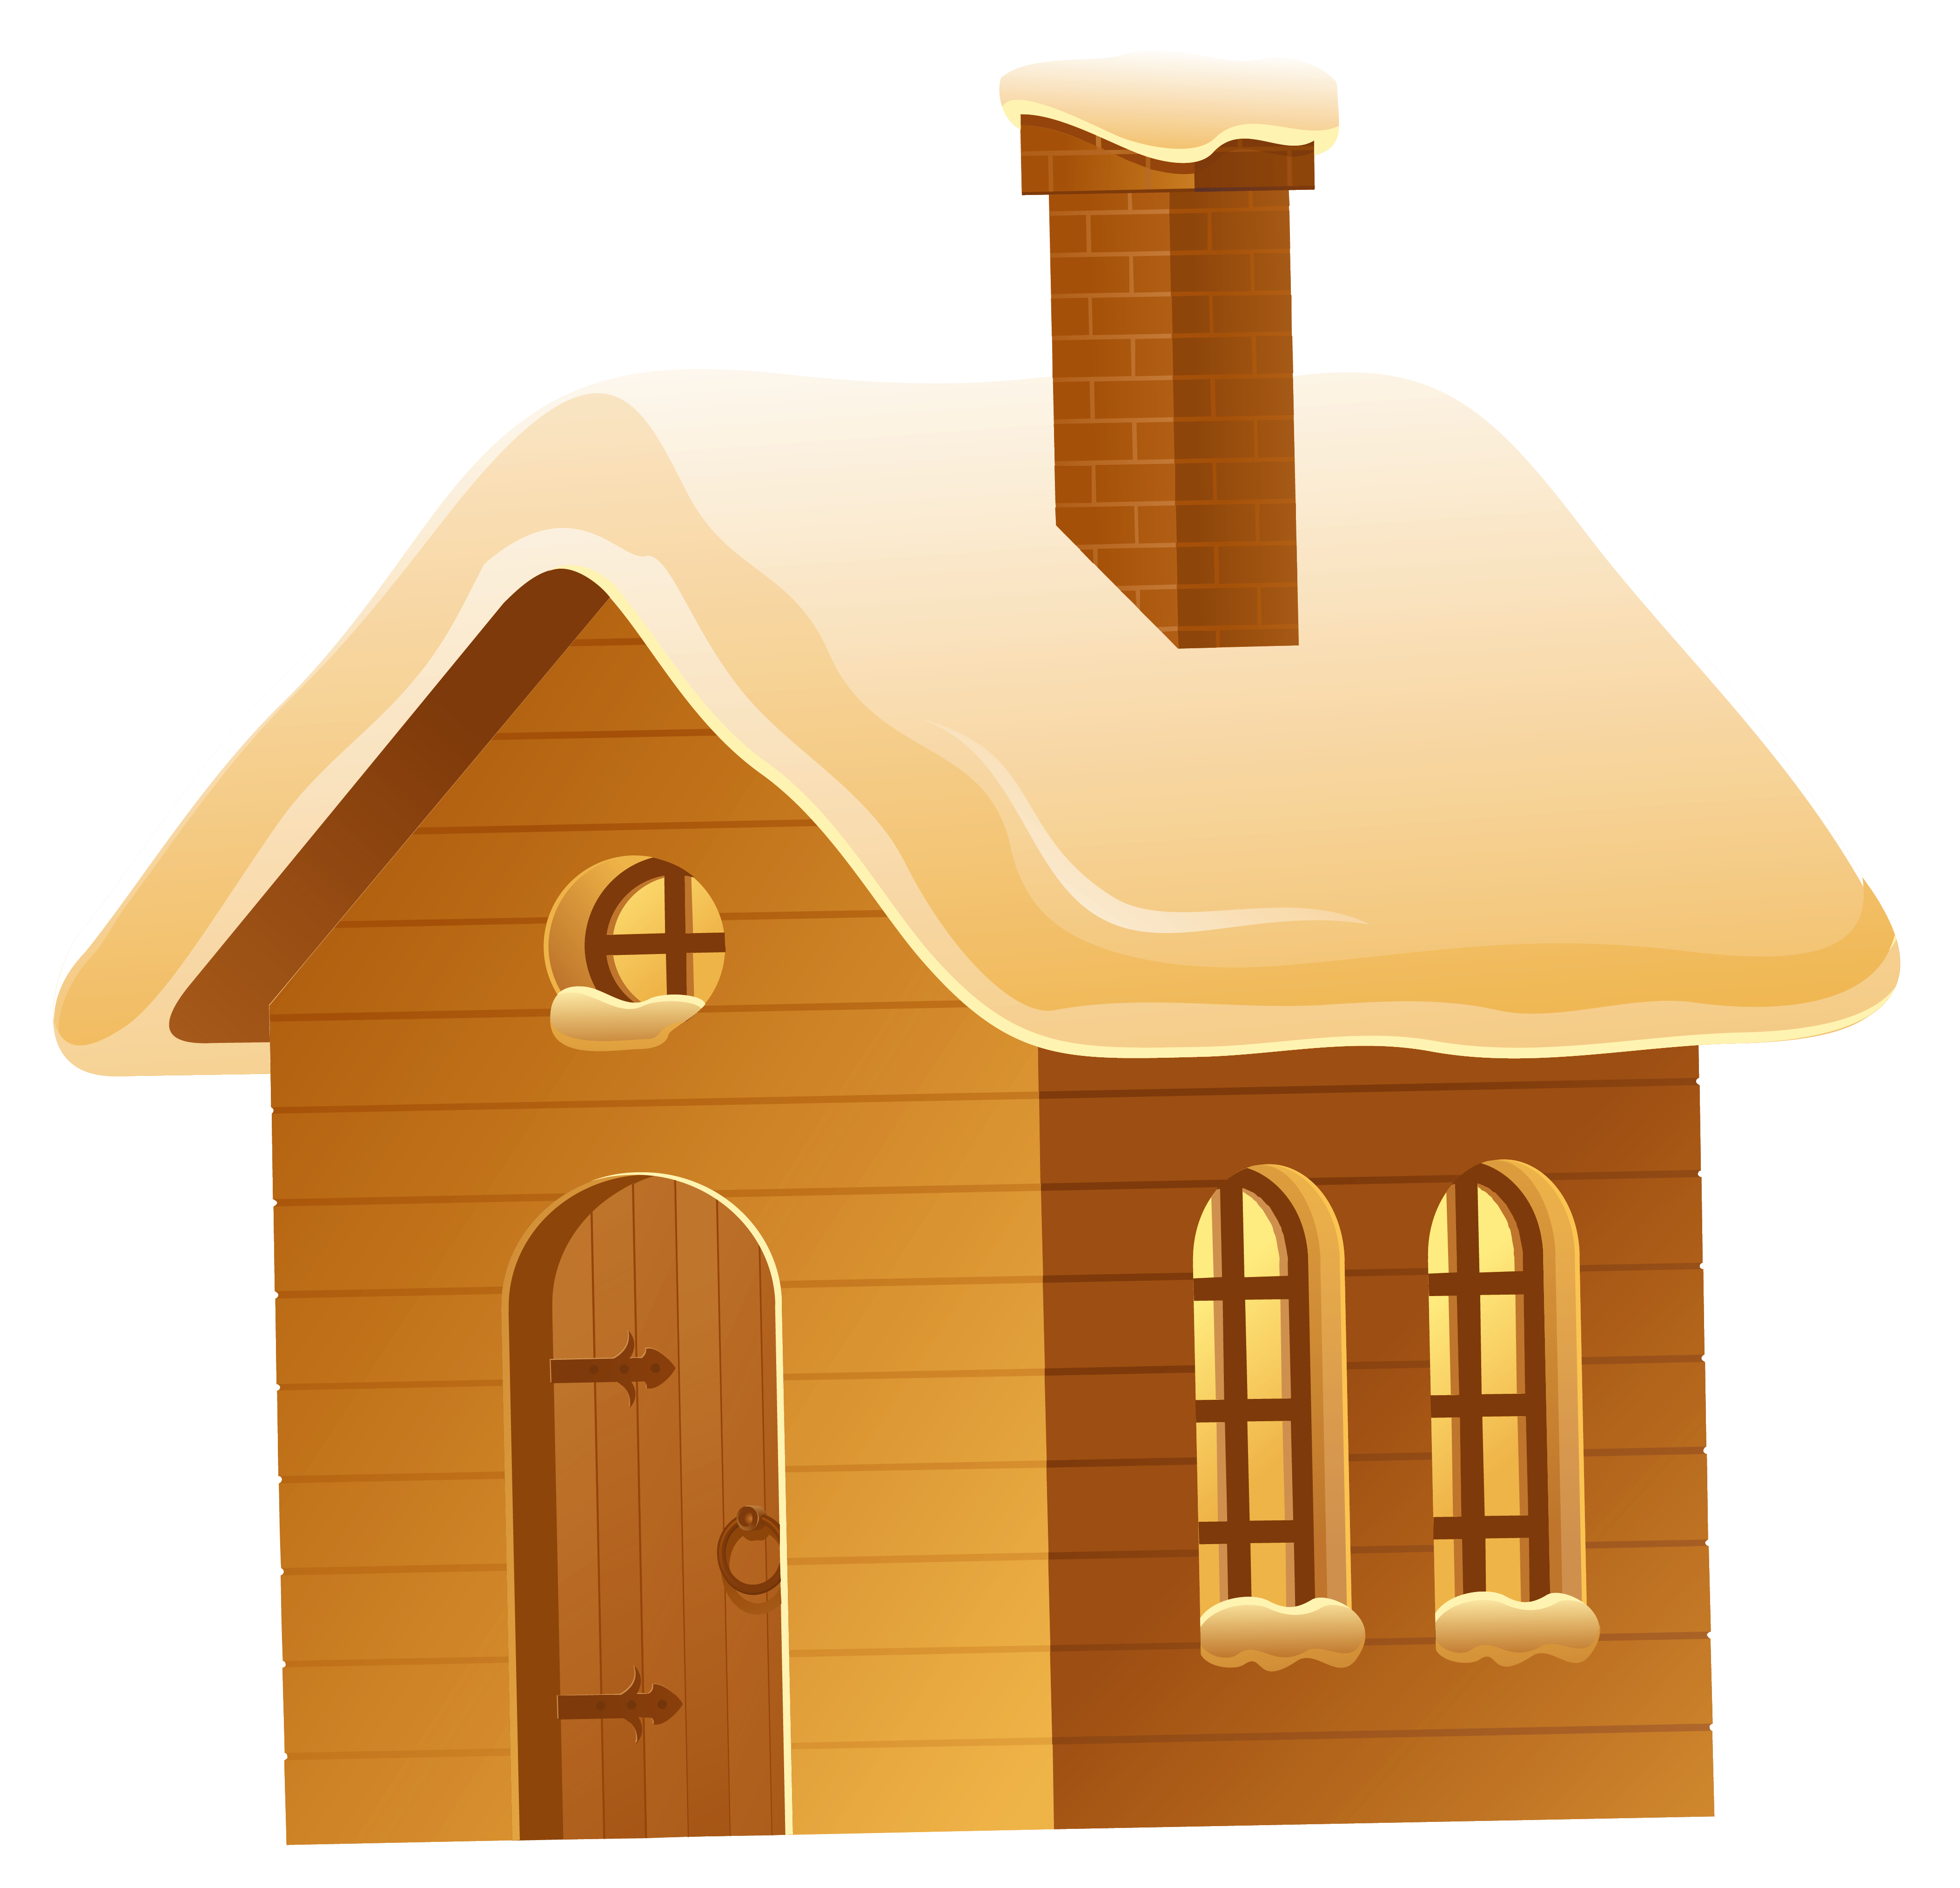 Free clipart image of a house royalty free download Winter Brown House PNG Picture | Gallery Yopriceville - High ... royalty free download